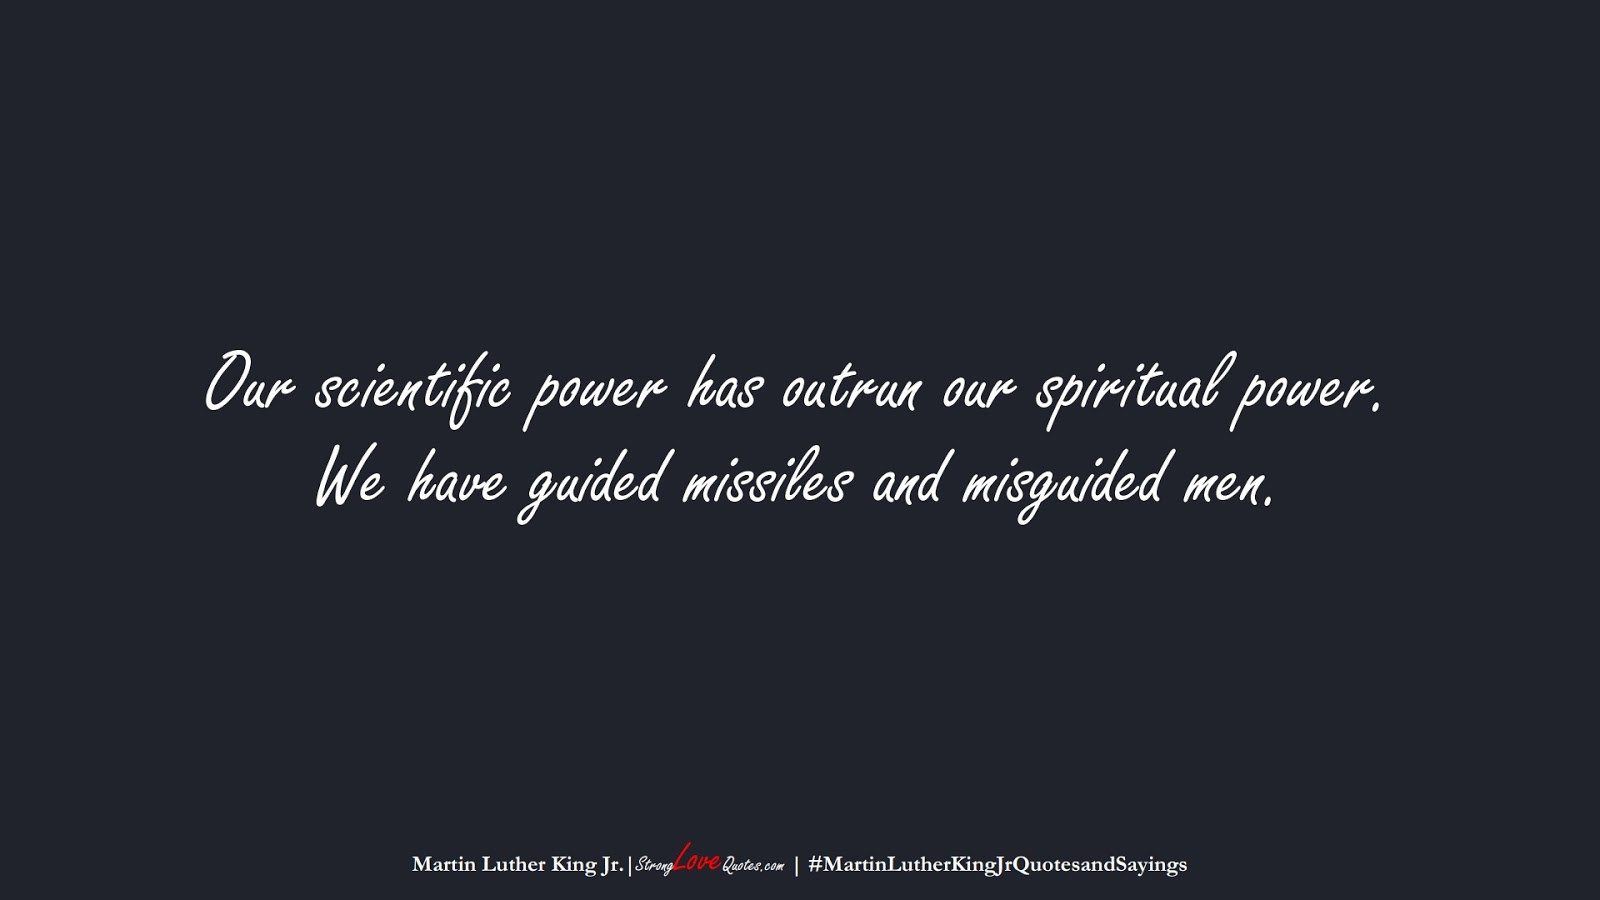 Our scientific power has outrun our spiritual power. We have guided missiles and misguided men. (Martin Luther King Jr.);  #MartinLutherKingJrQuotesandSayings